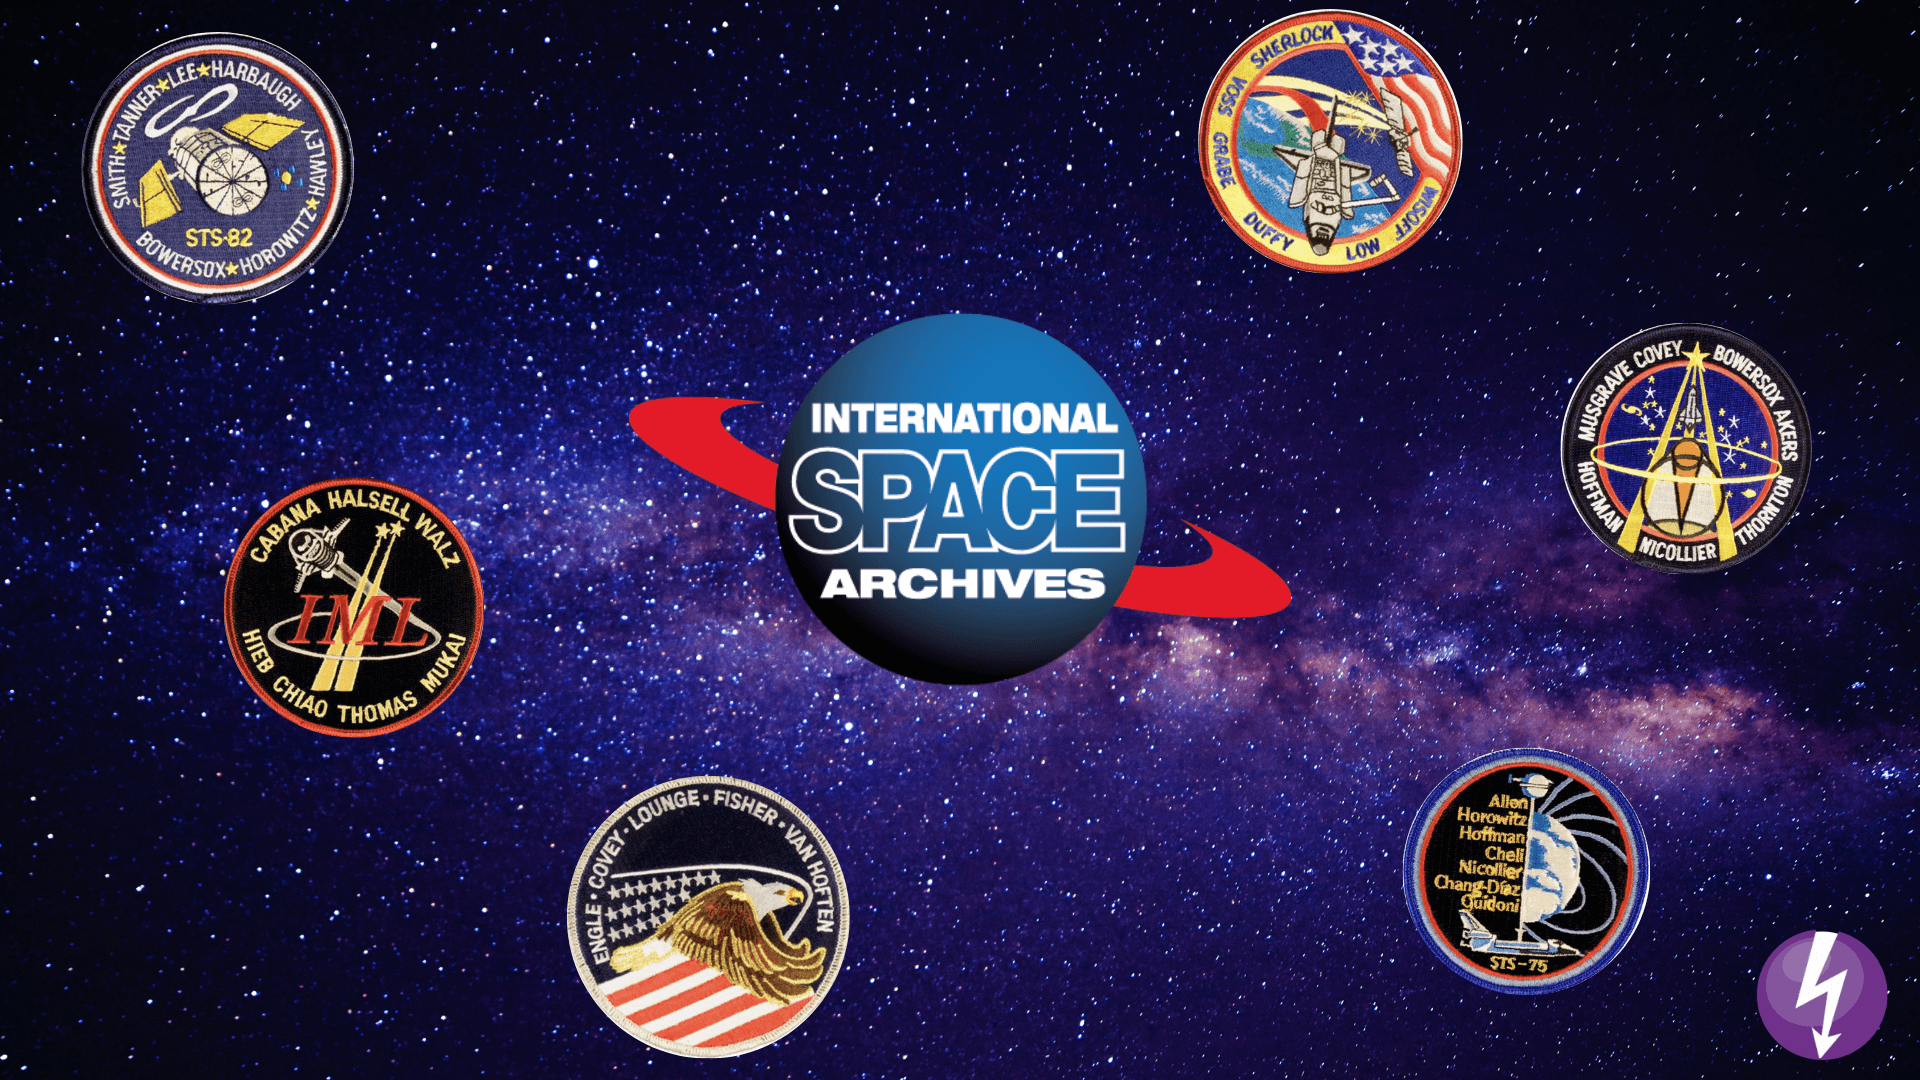 International Space Archives (ISA)